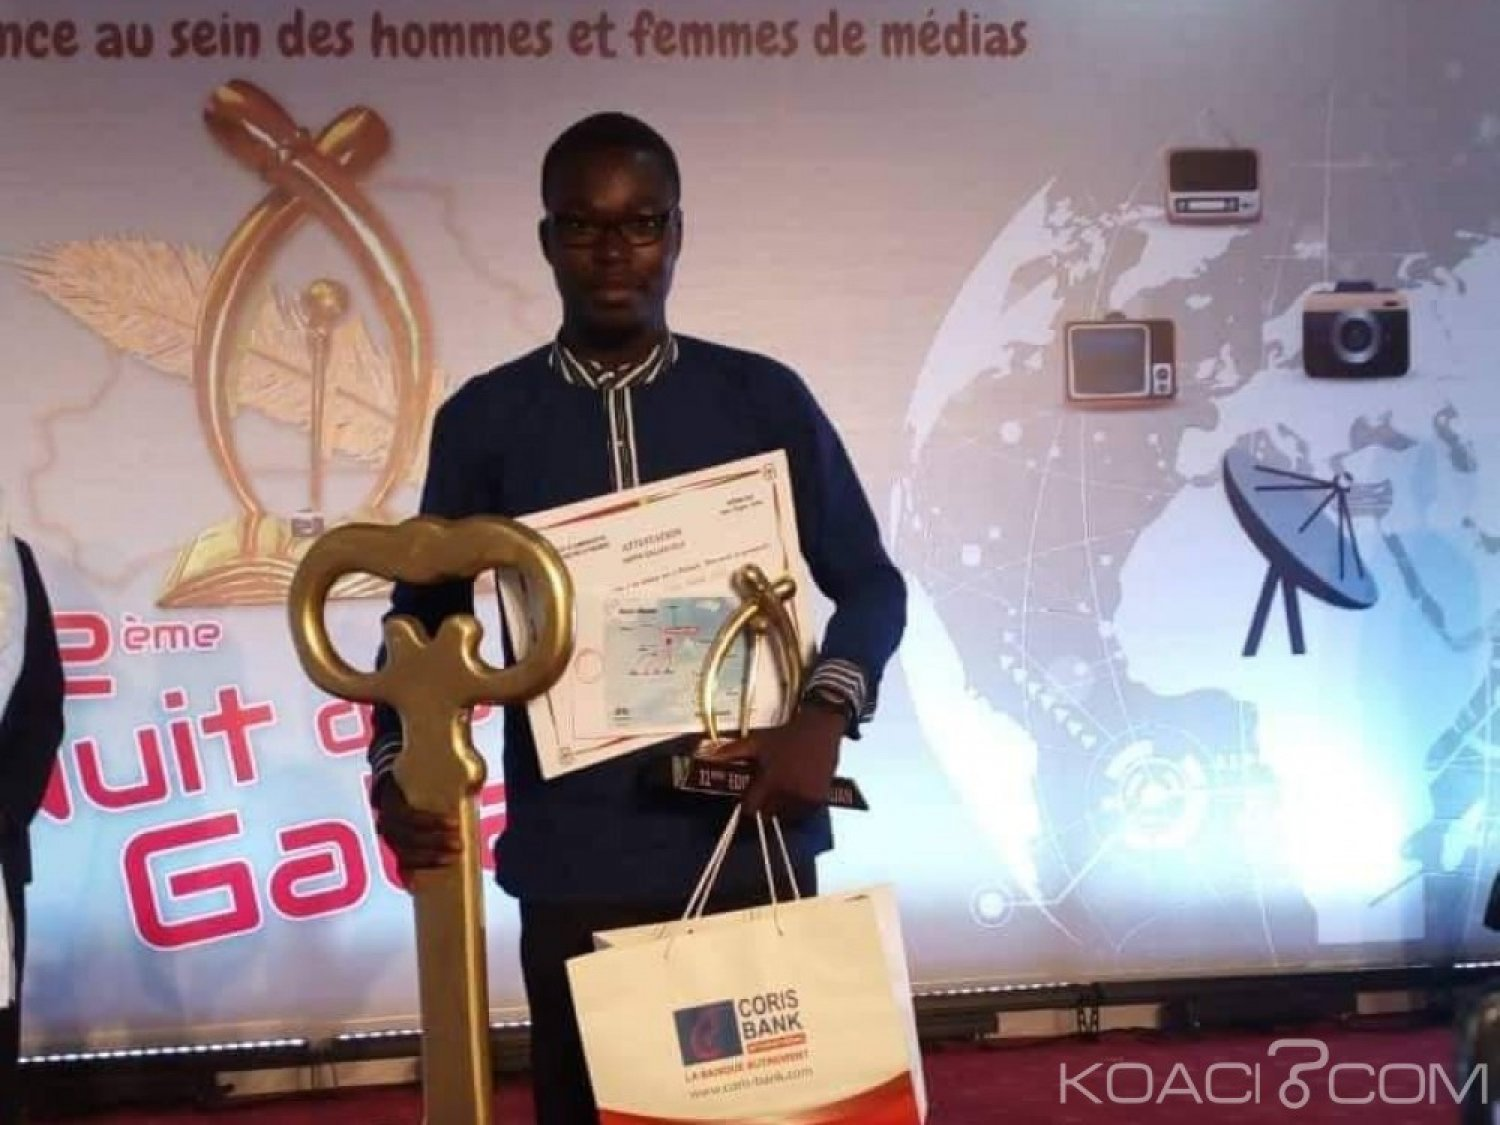 Burkina Faso : Le journaliste Hugues Richard Sama sacré super galian